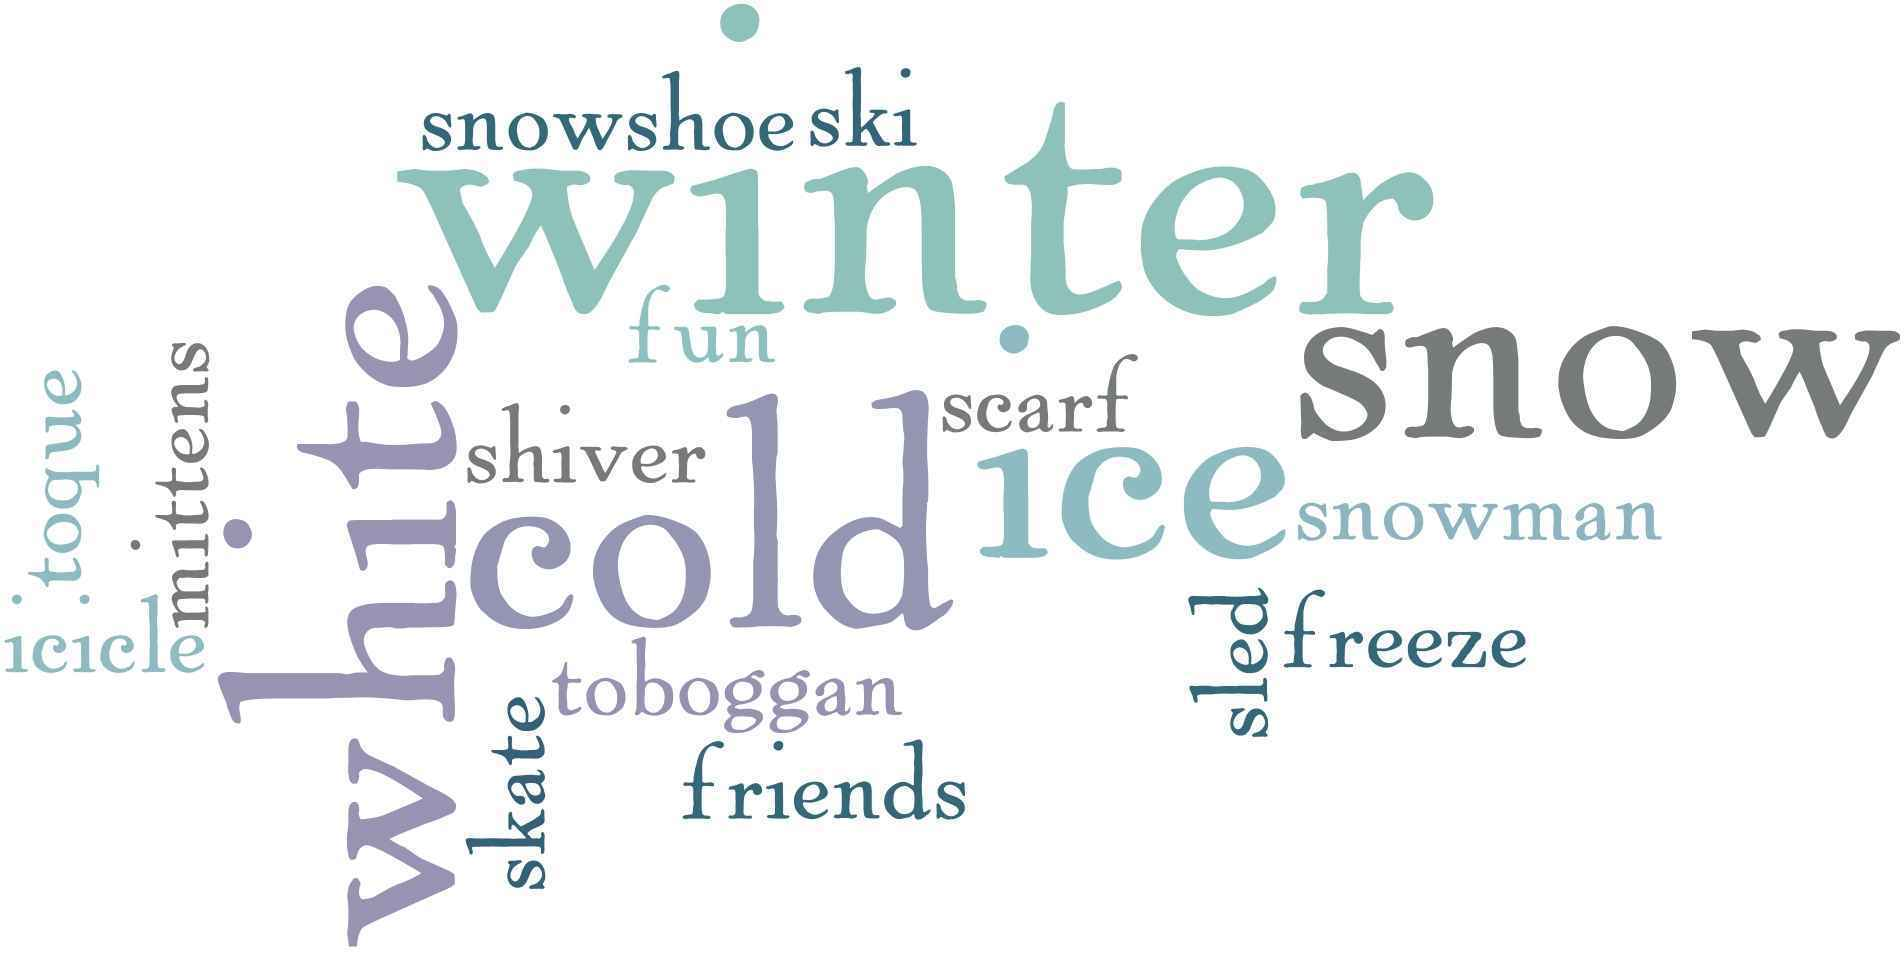 010 Essay Examplewordle Phenomenal Winter Topics Season For Class 7 In Urdu On 6 Full